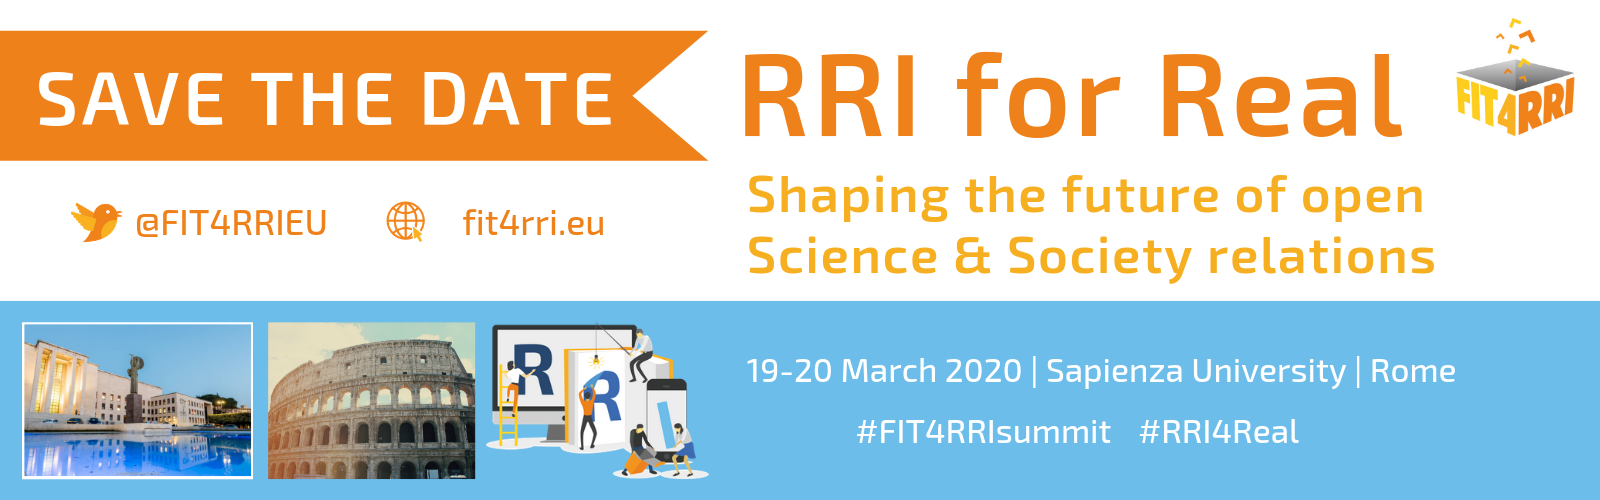 RRI for Real_ Shaping the Future of Open Science & Society Relations(1).png